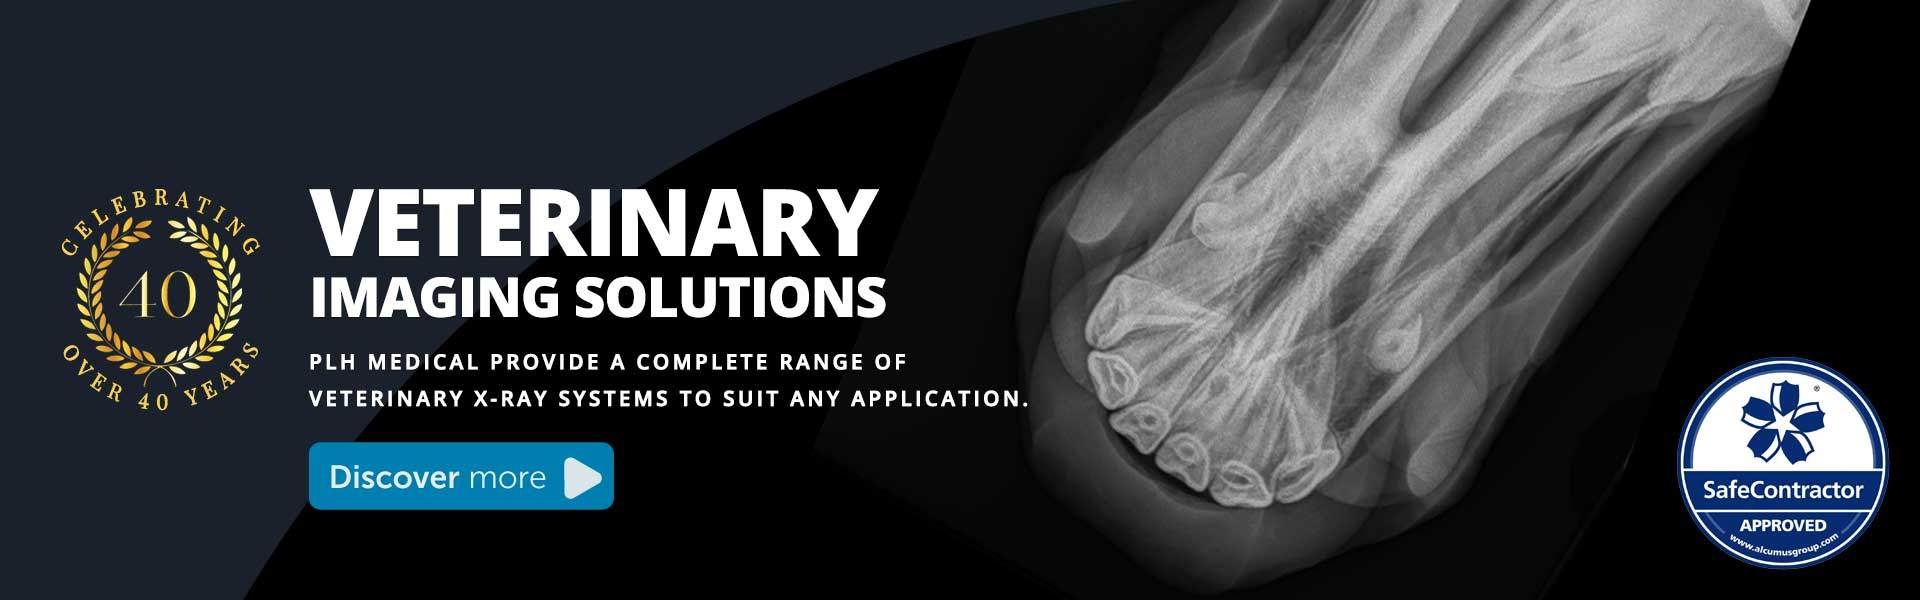 Veterinary Imaging Solutions